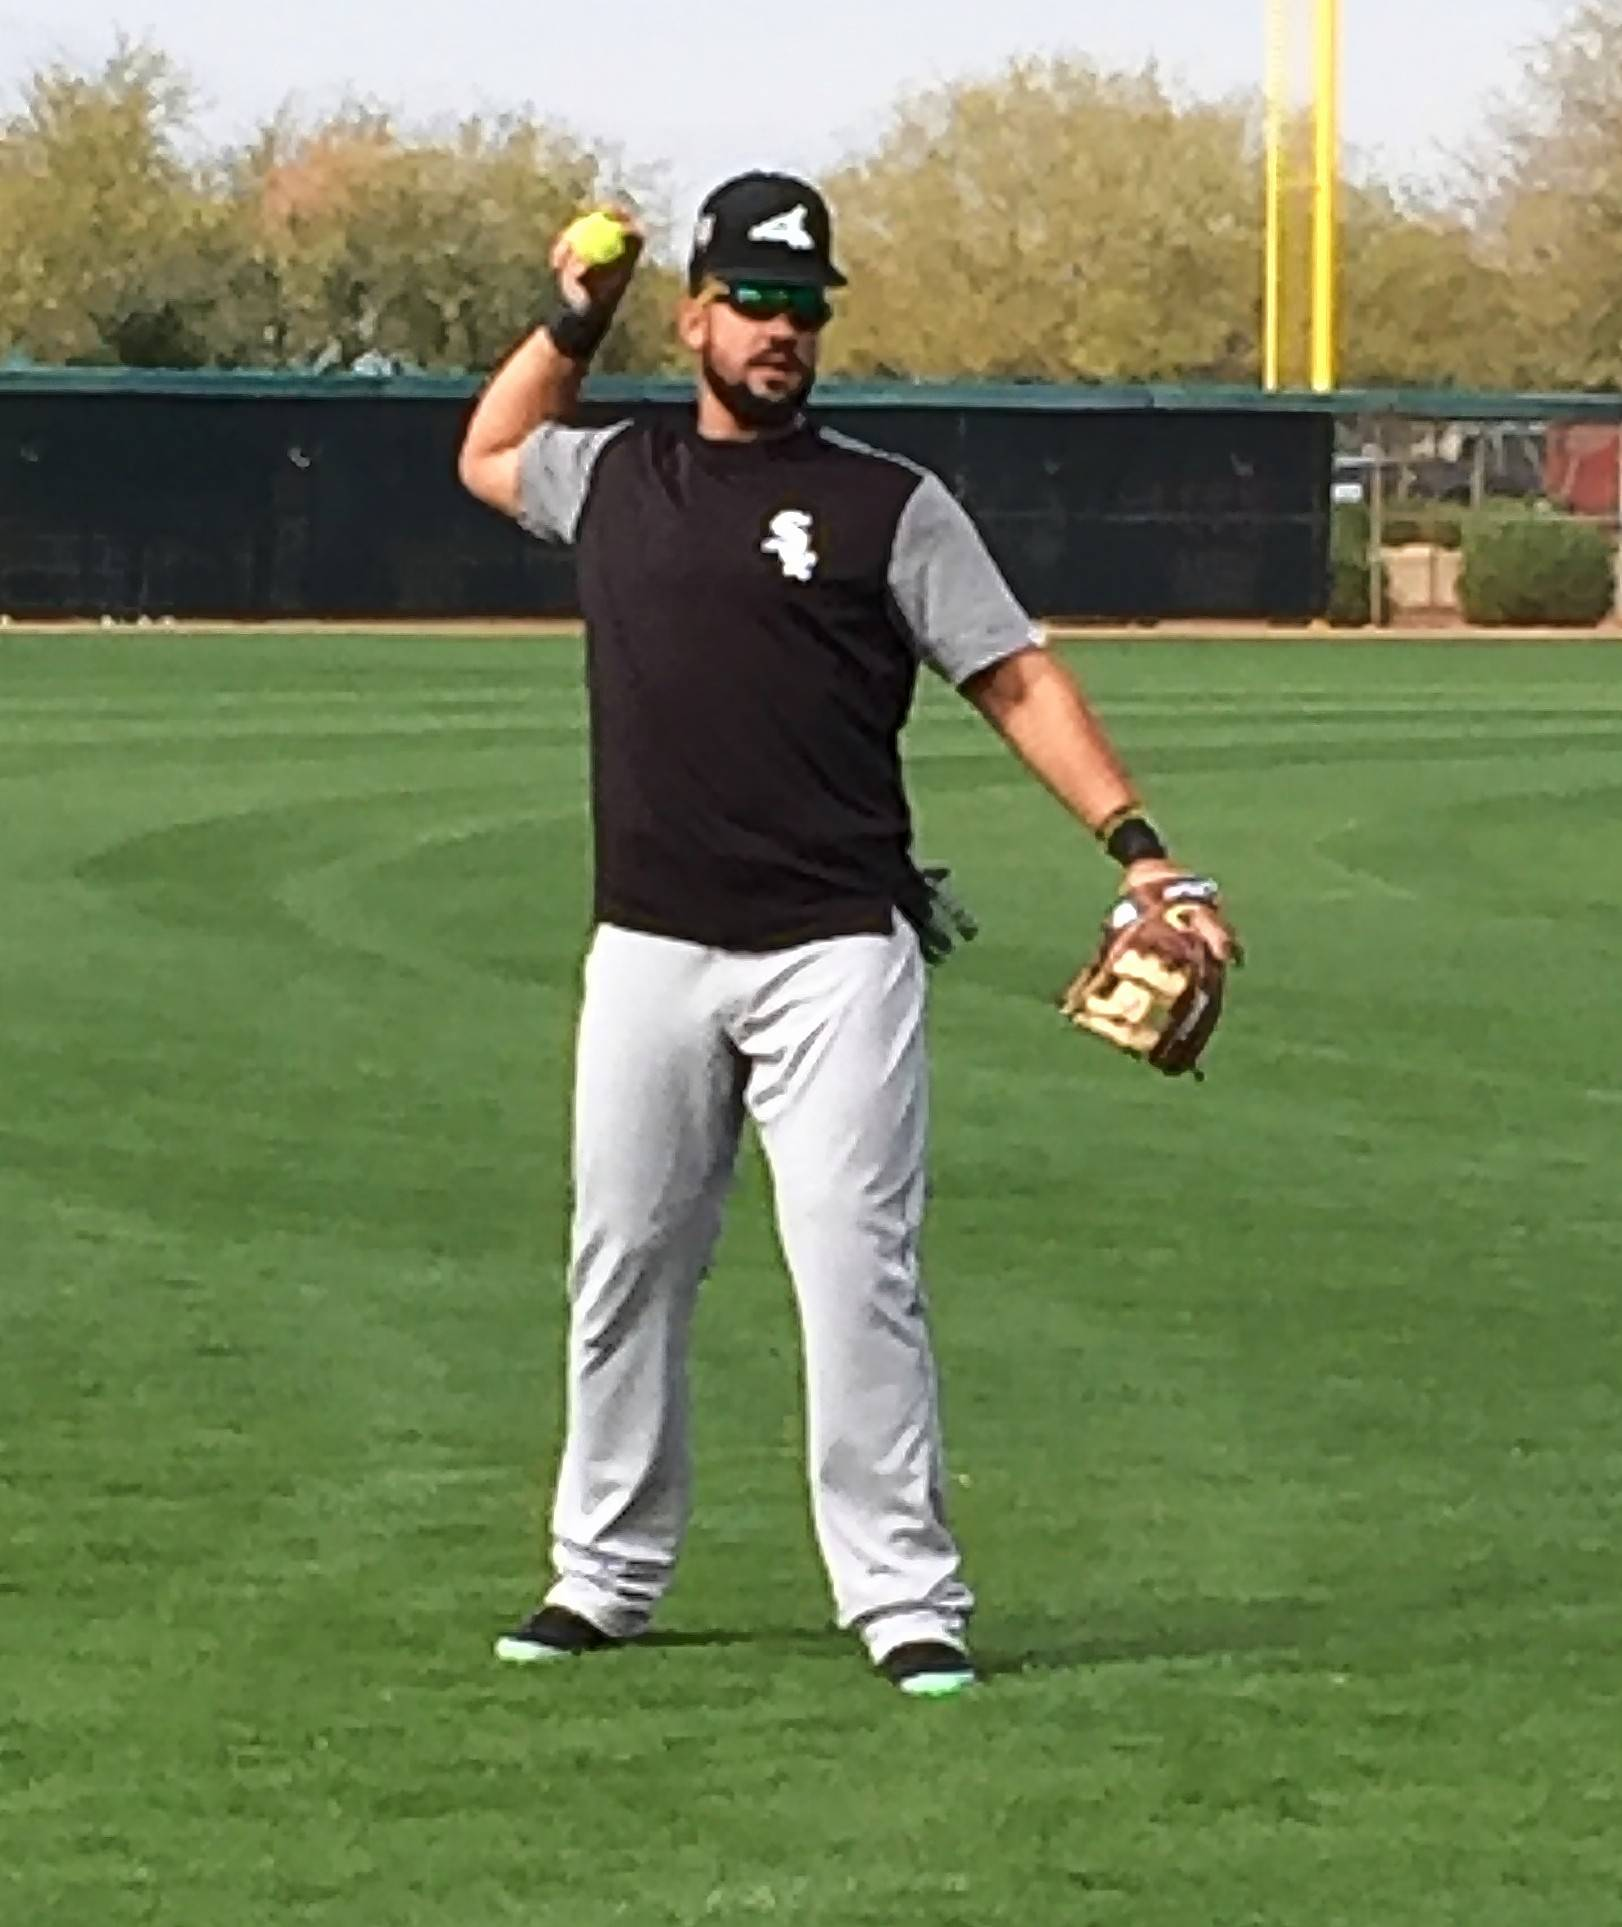 White Sox first baseman Jose Abreu gets in some work Sunday at Camelback Ranch in Glendale, Ariz.